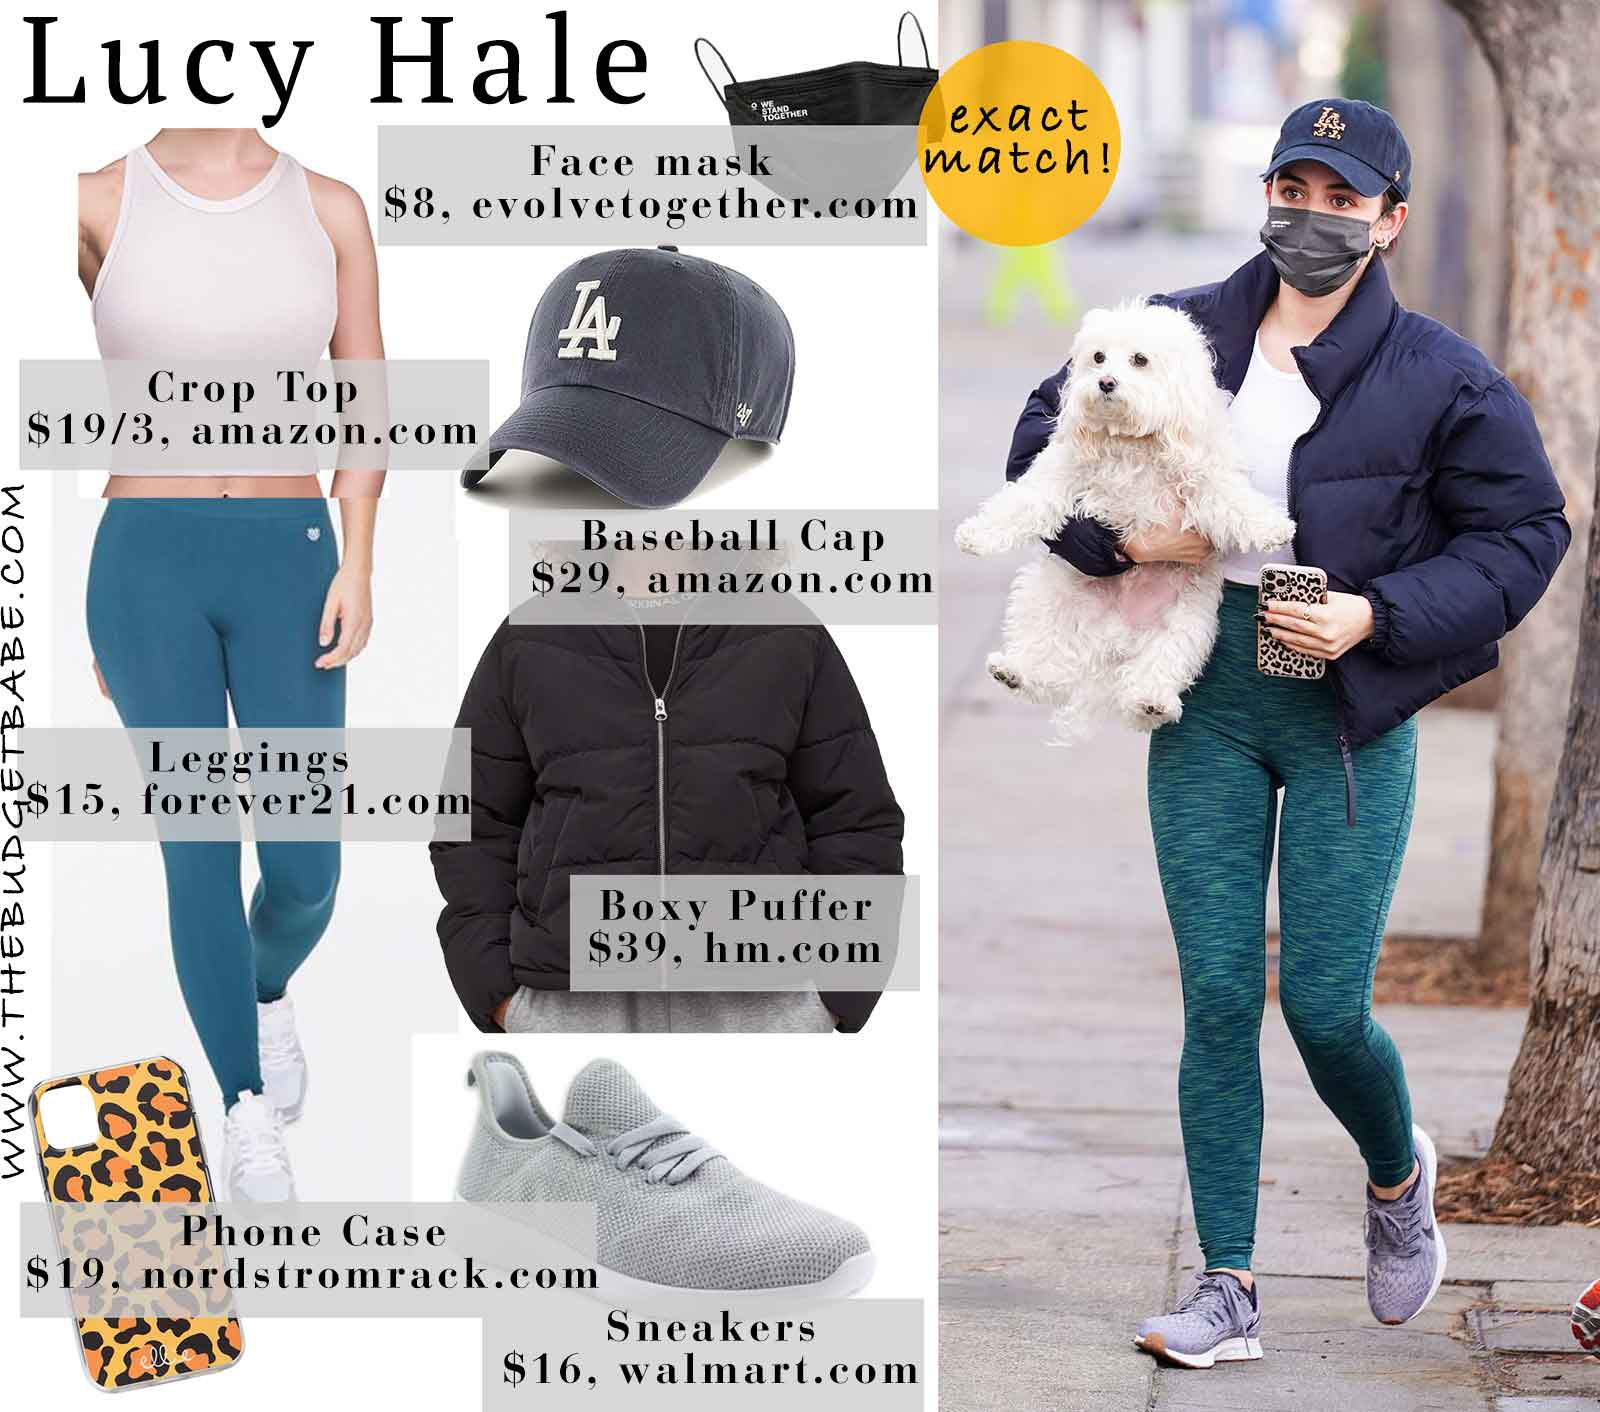 Lucy Hale's teal leggings and puffer coat look for less